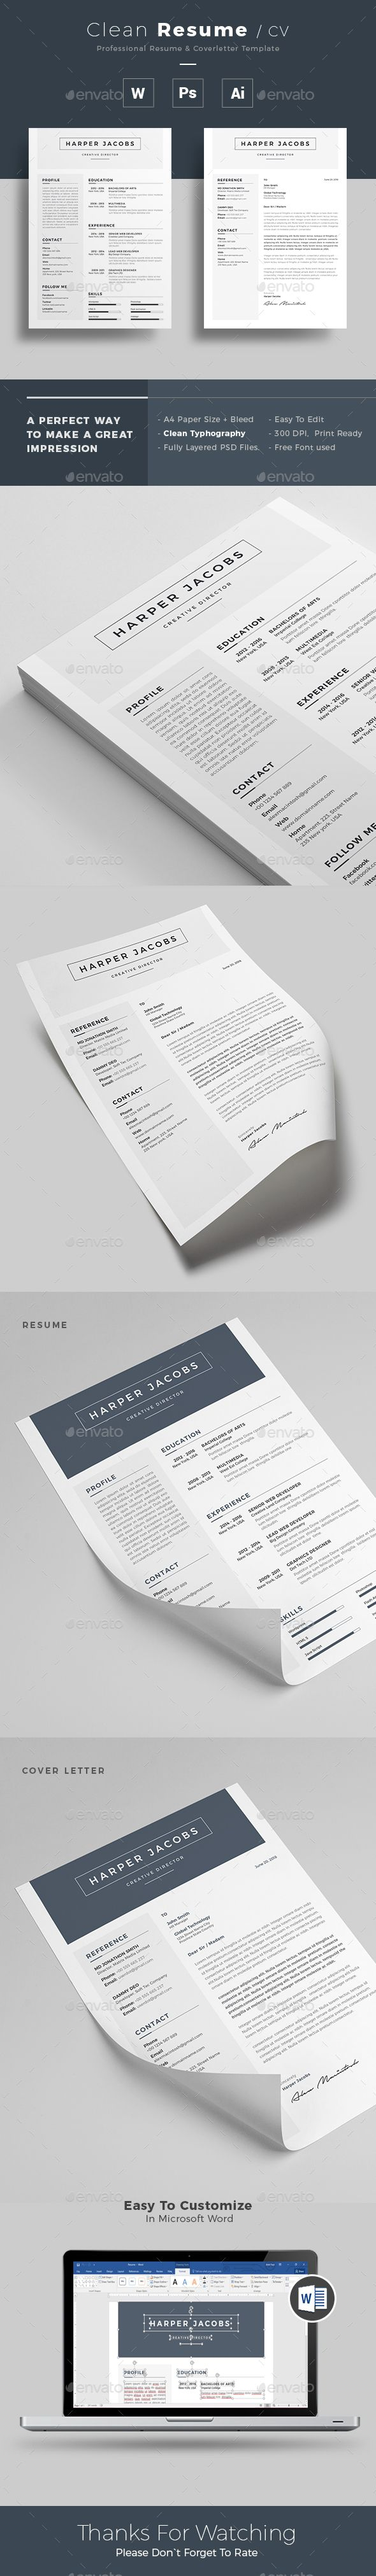 #Resume - Resumes #Stationery Download here: https://graphicriver.net/item/resume/19535842?ref=alena994